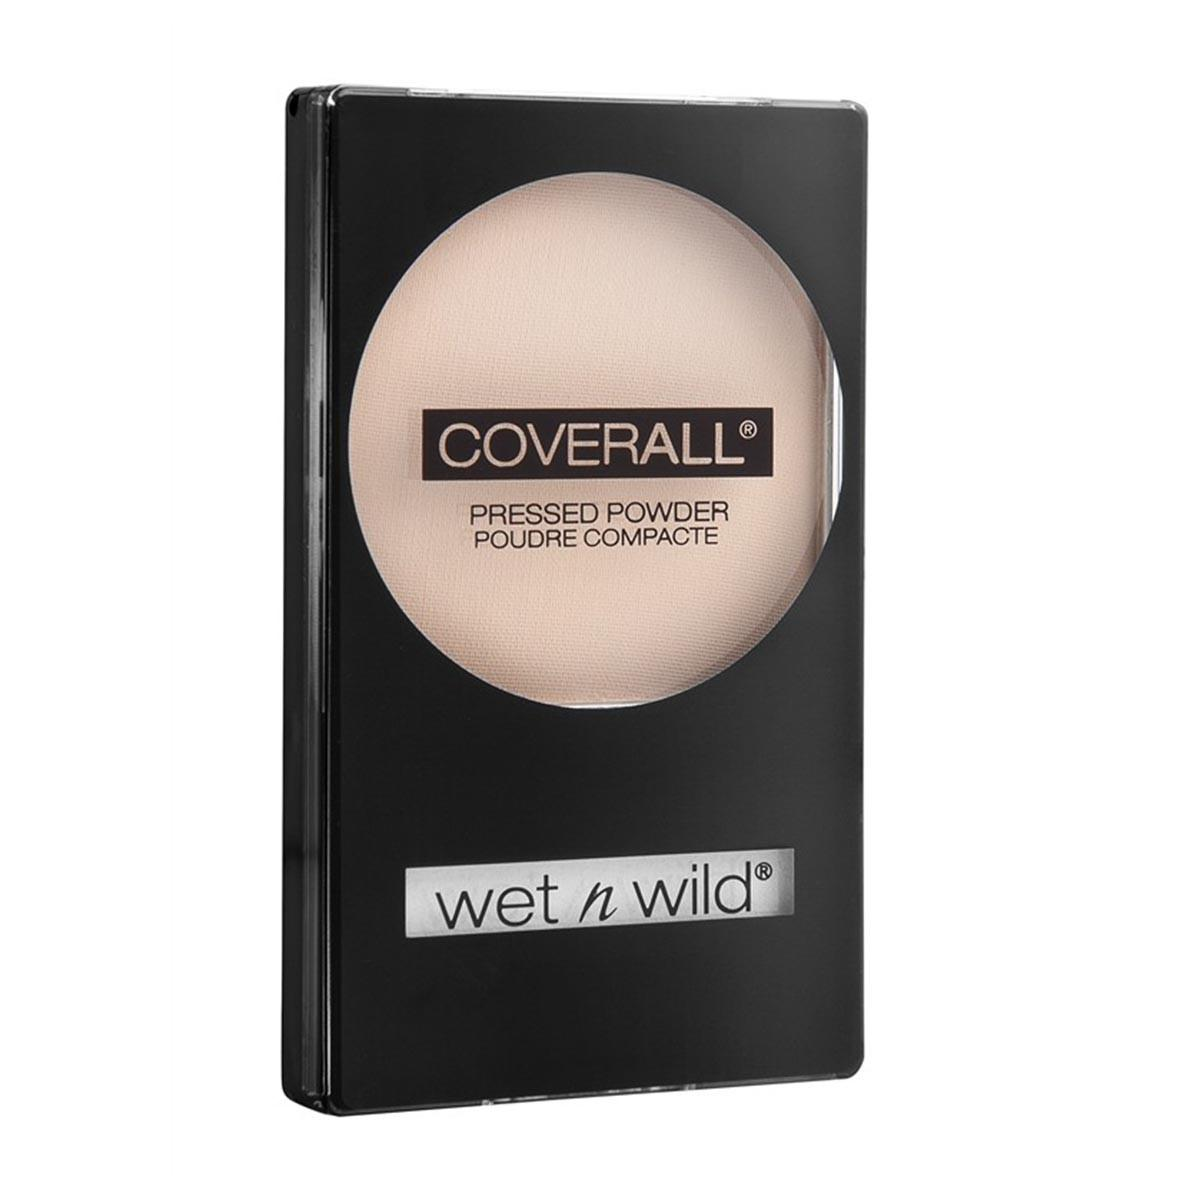 Wet n wild Coverall Pressed Powder Medium